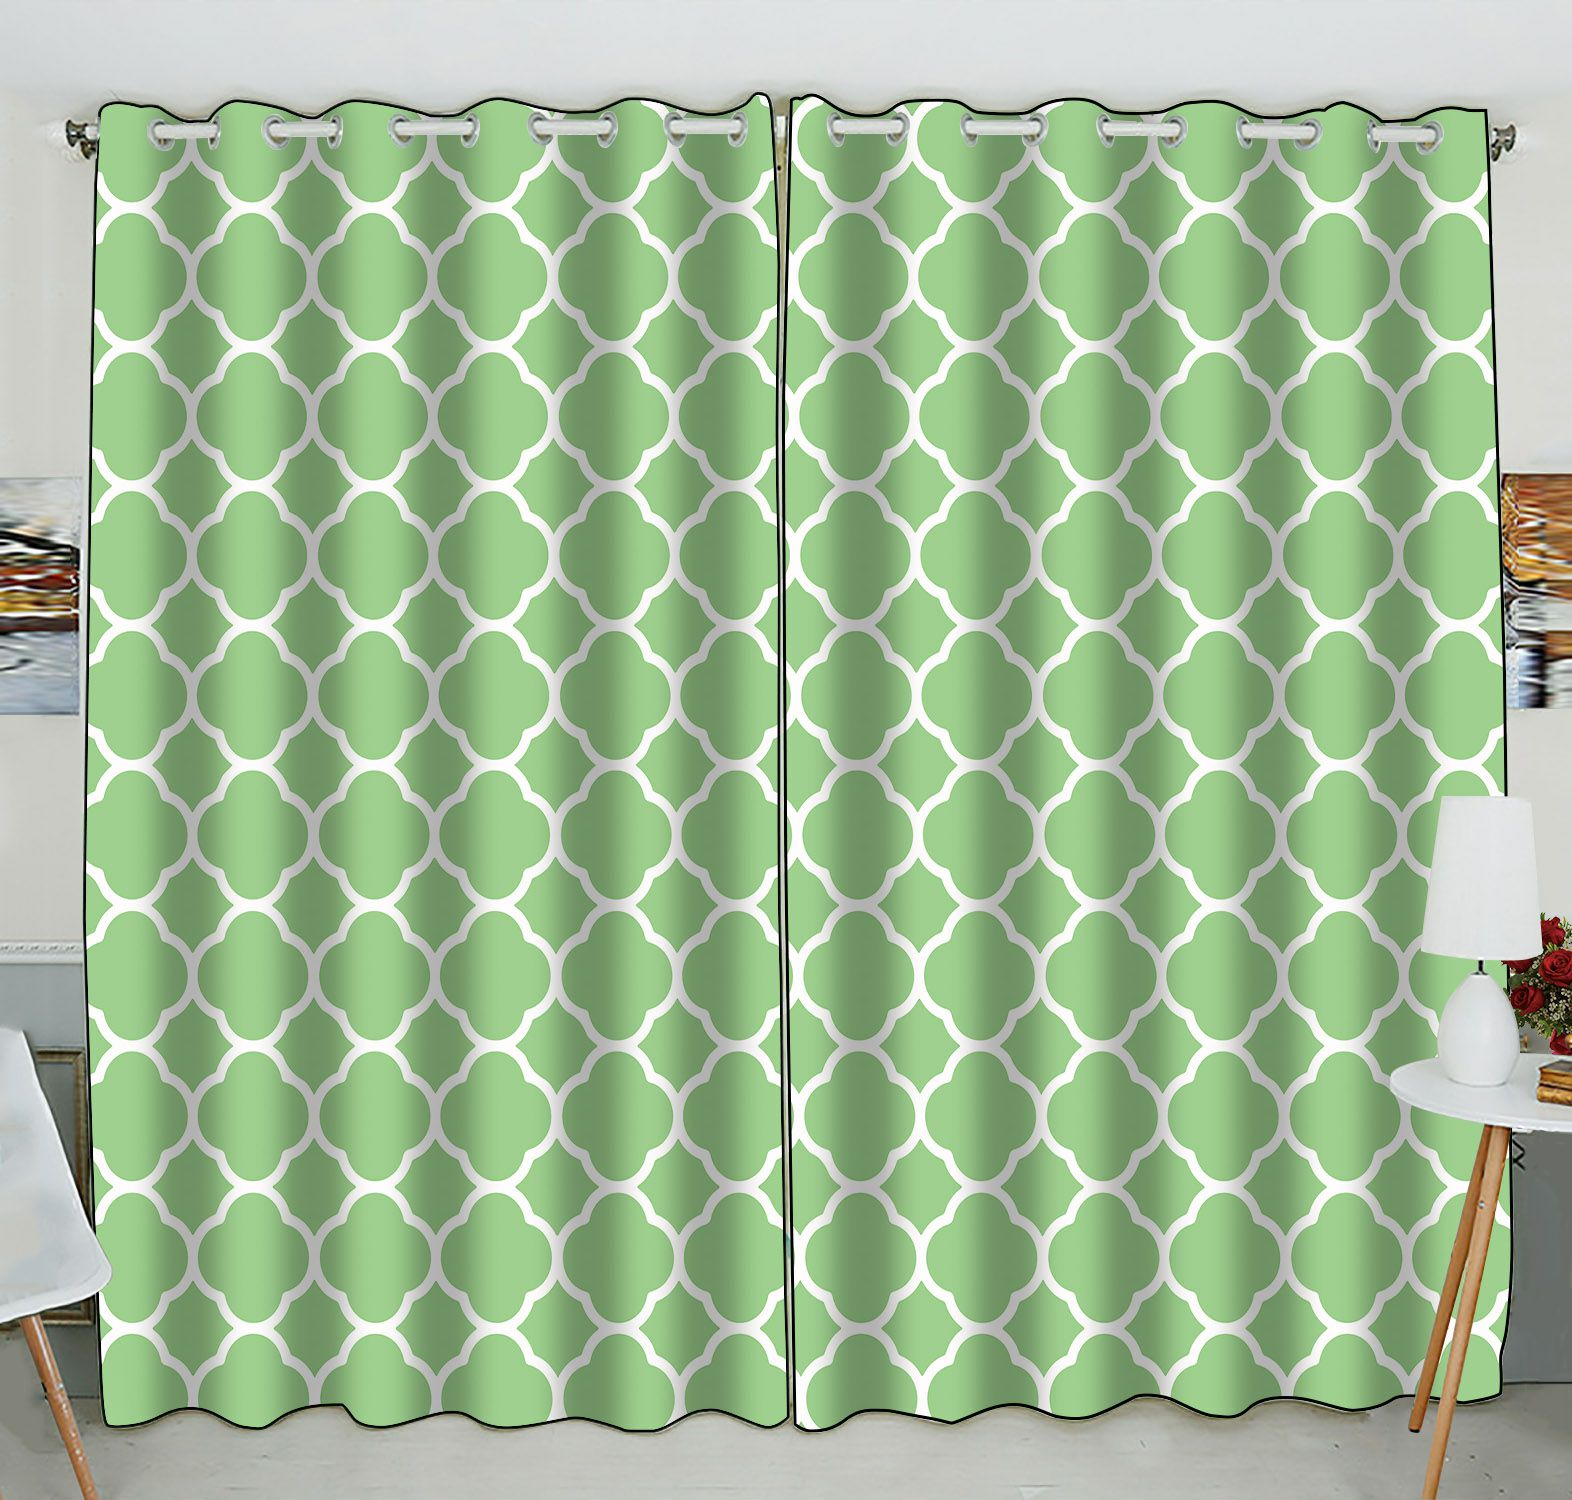 ZKGK Quatrefoil Pattern Window Curtain Drapery/Panels/Treatment For Living Room Bedroom Kids Rooms 52x84 inches Two Panel